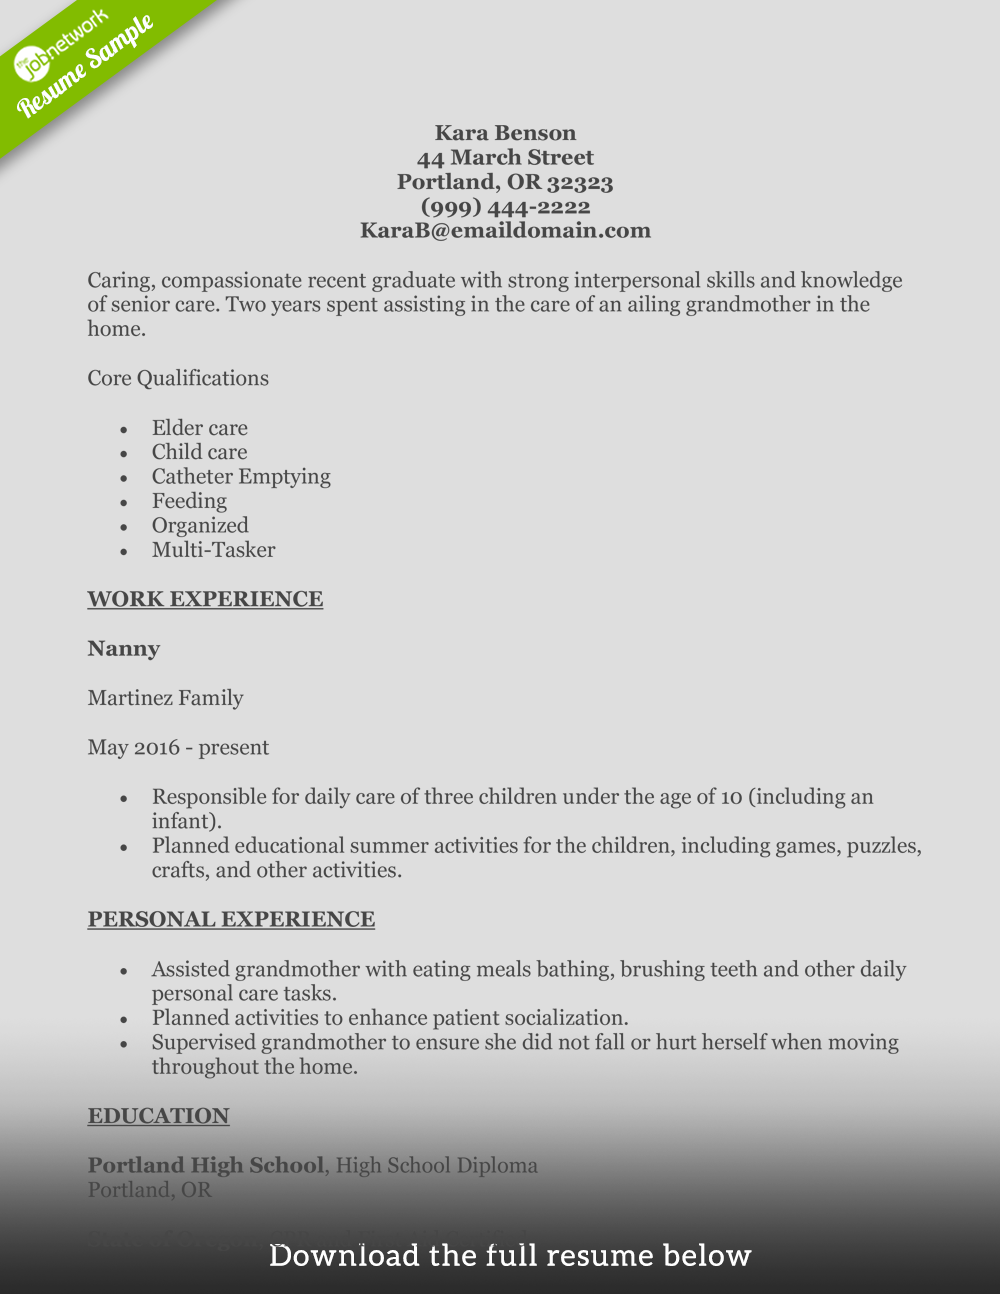 Home Health Aide Resume Entry Level